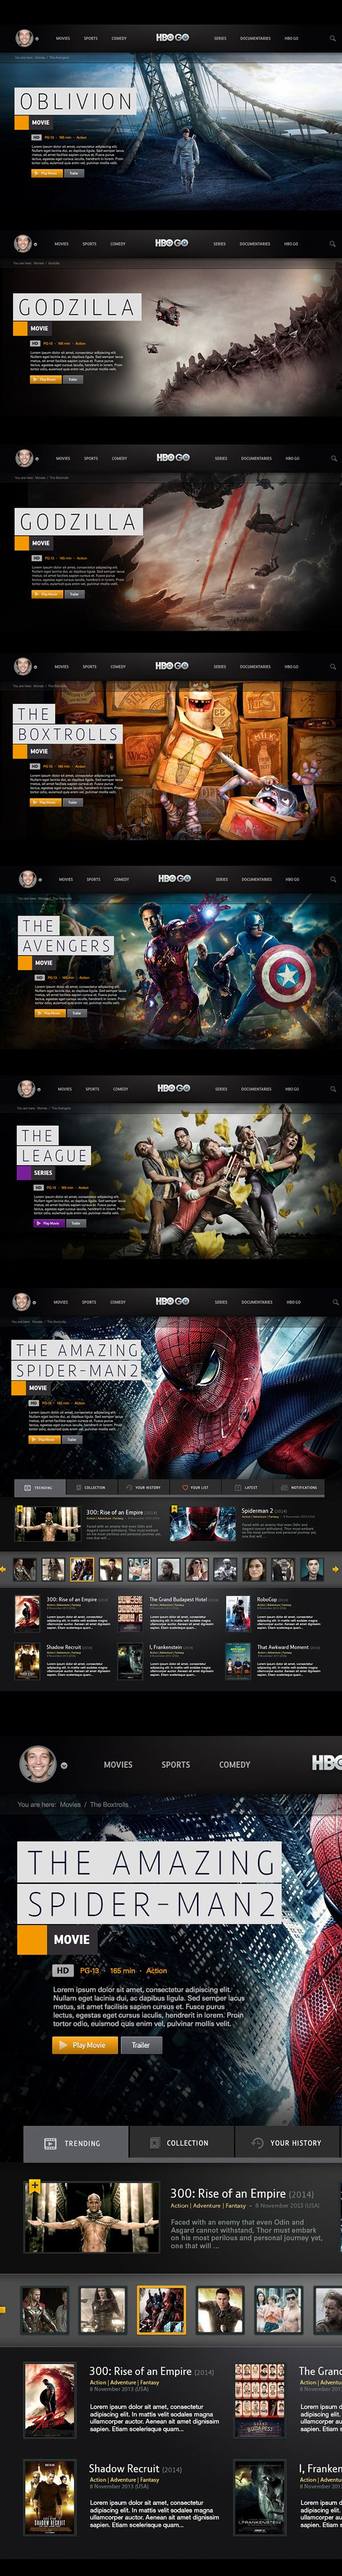 HBO GO : Interactive on Behance  | web design inspiration | digital media arts college | www.dmac.edu | 561.391.1148